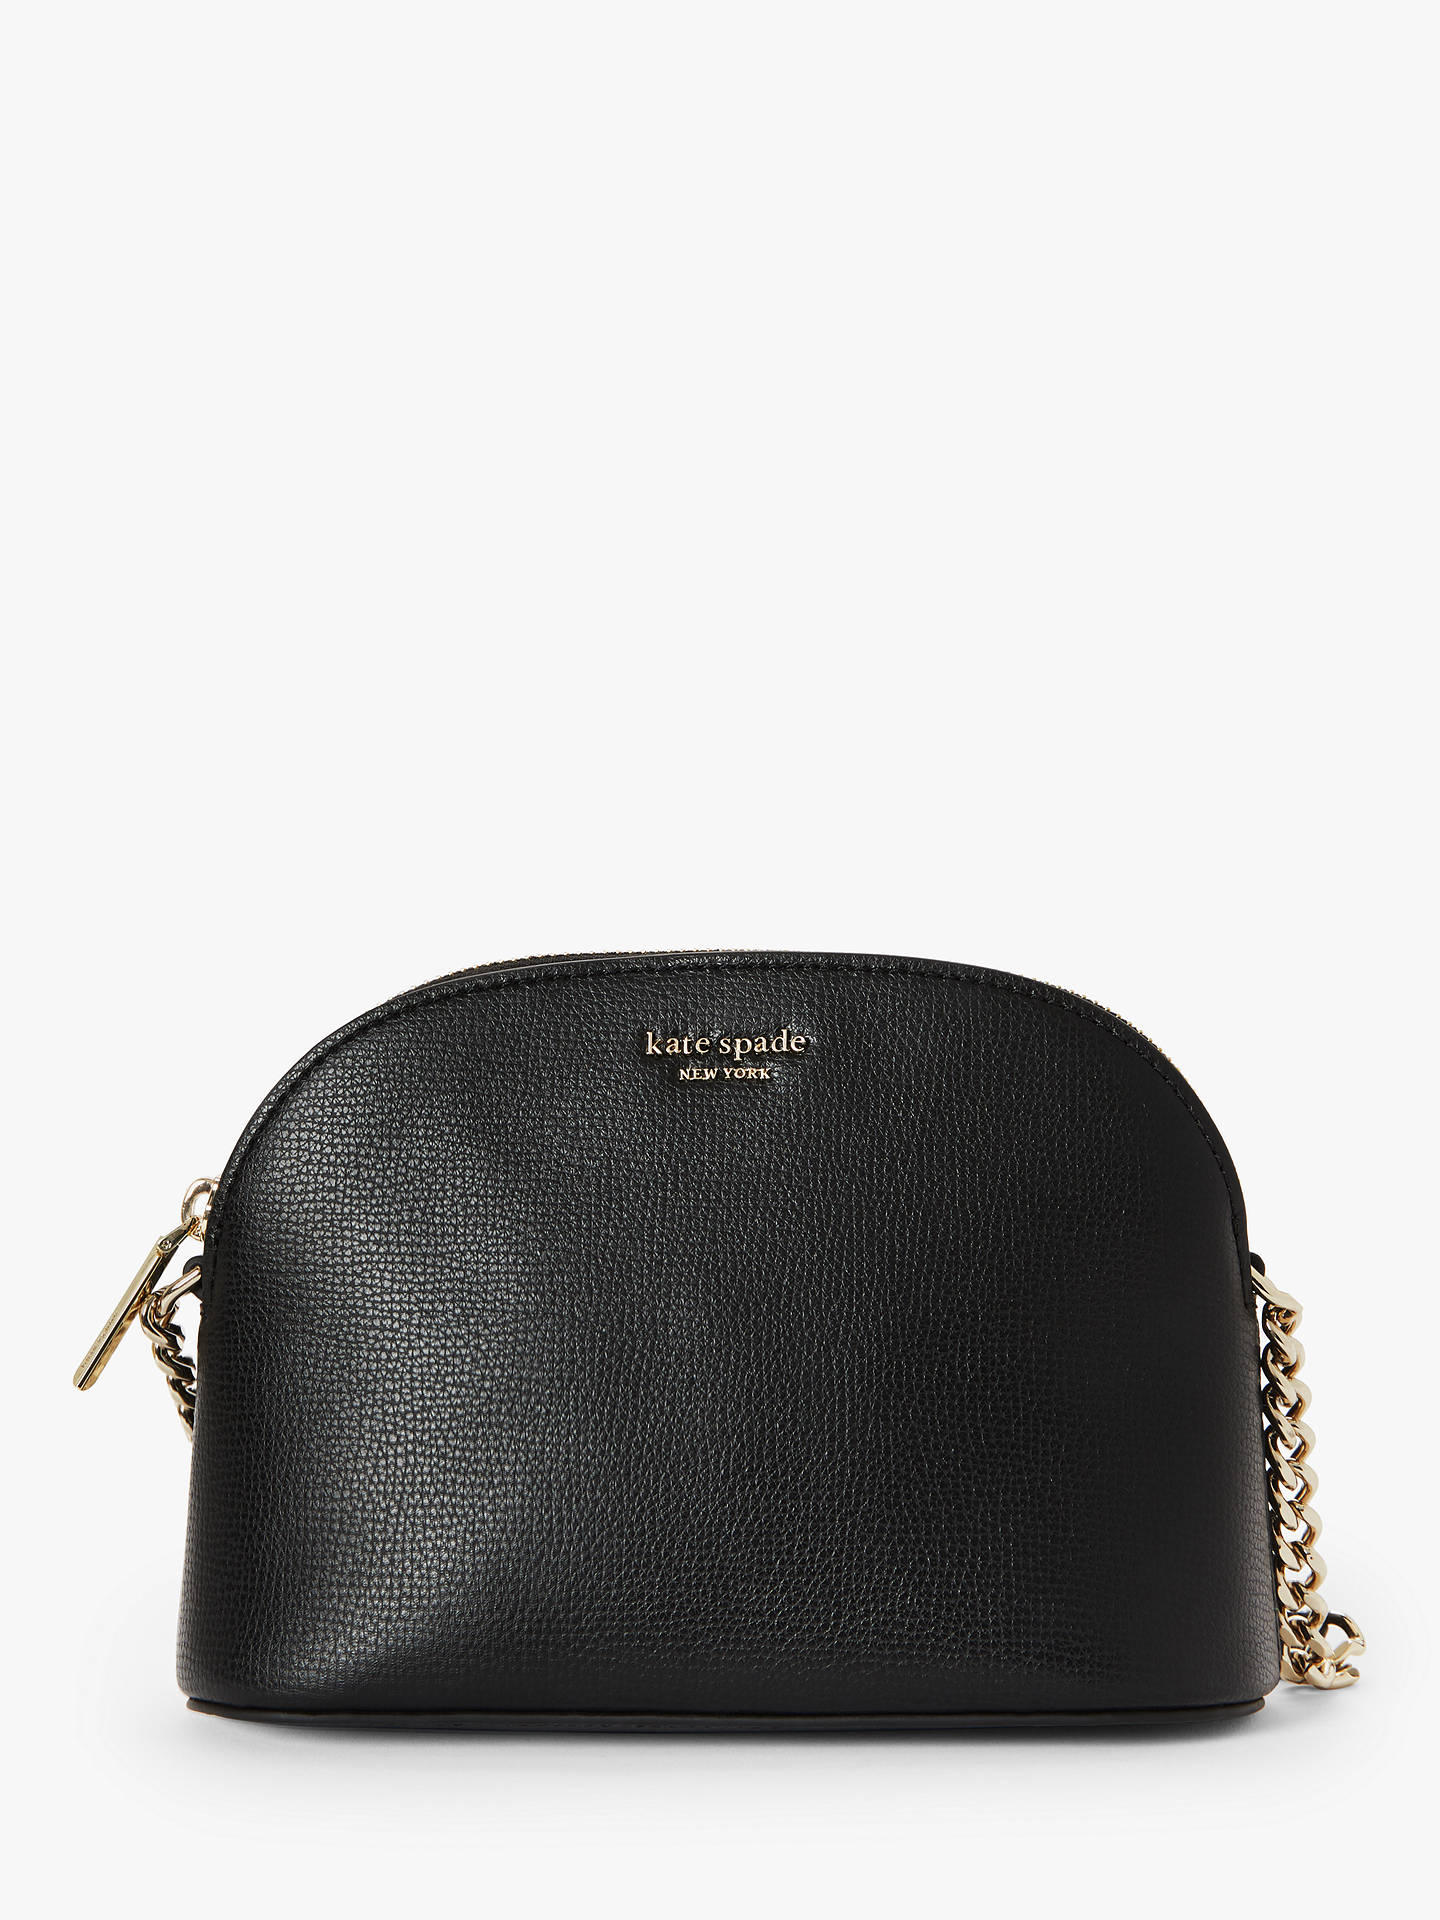 e4aa2b51206d Buy kate spade new york Sylvia Leather Small Dome Cross Body Bag, Black  Online at ...